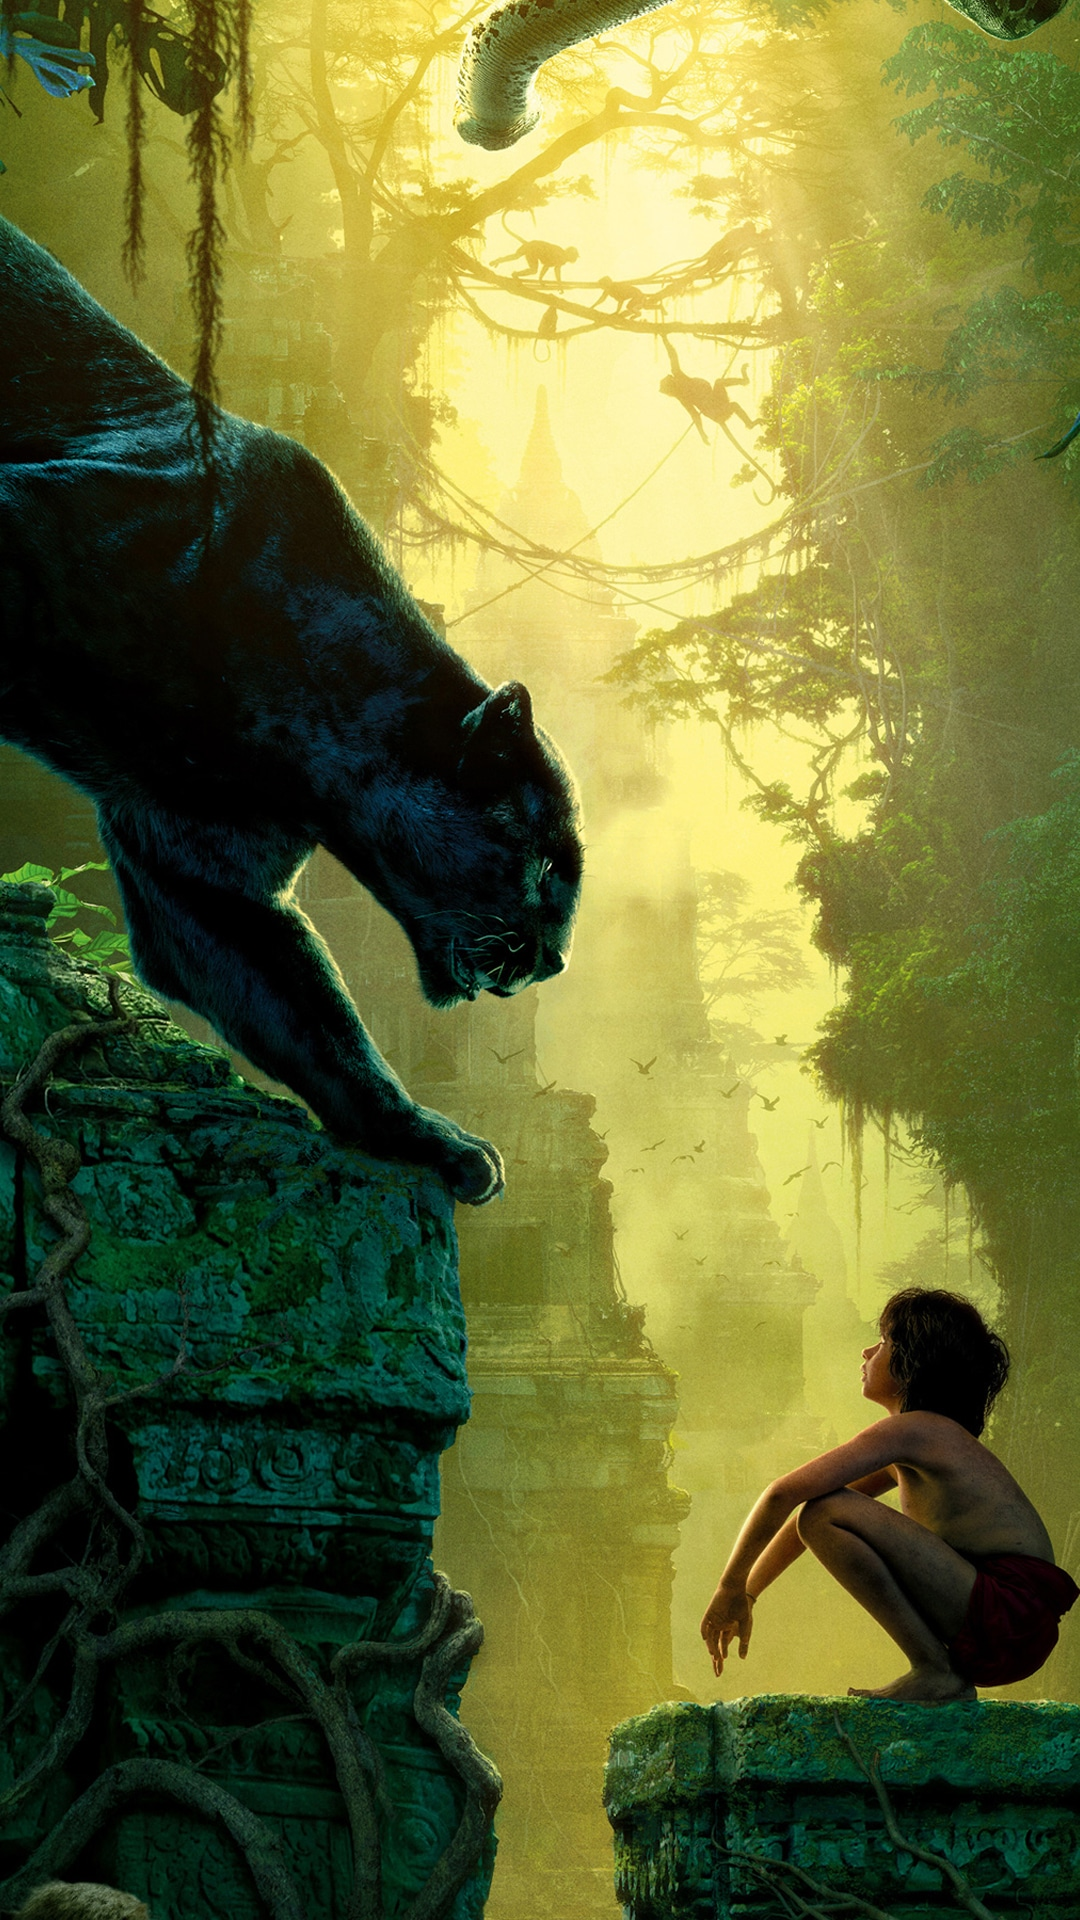 The Jungle Book 2016 Movie Wallpapers For Iphone Apple Lives